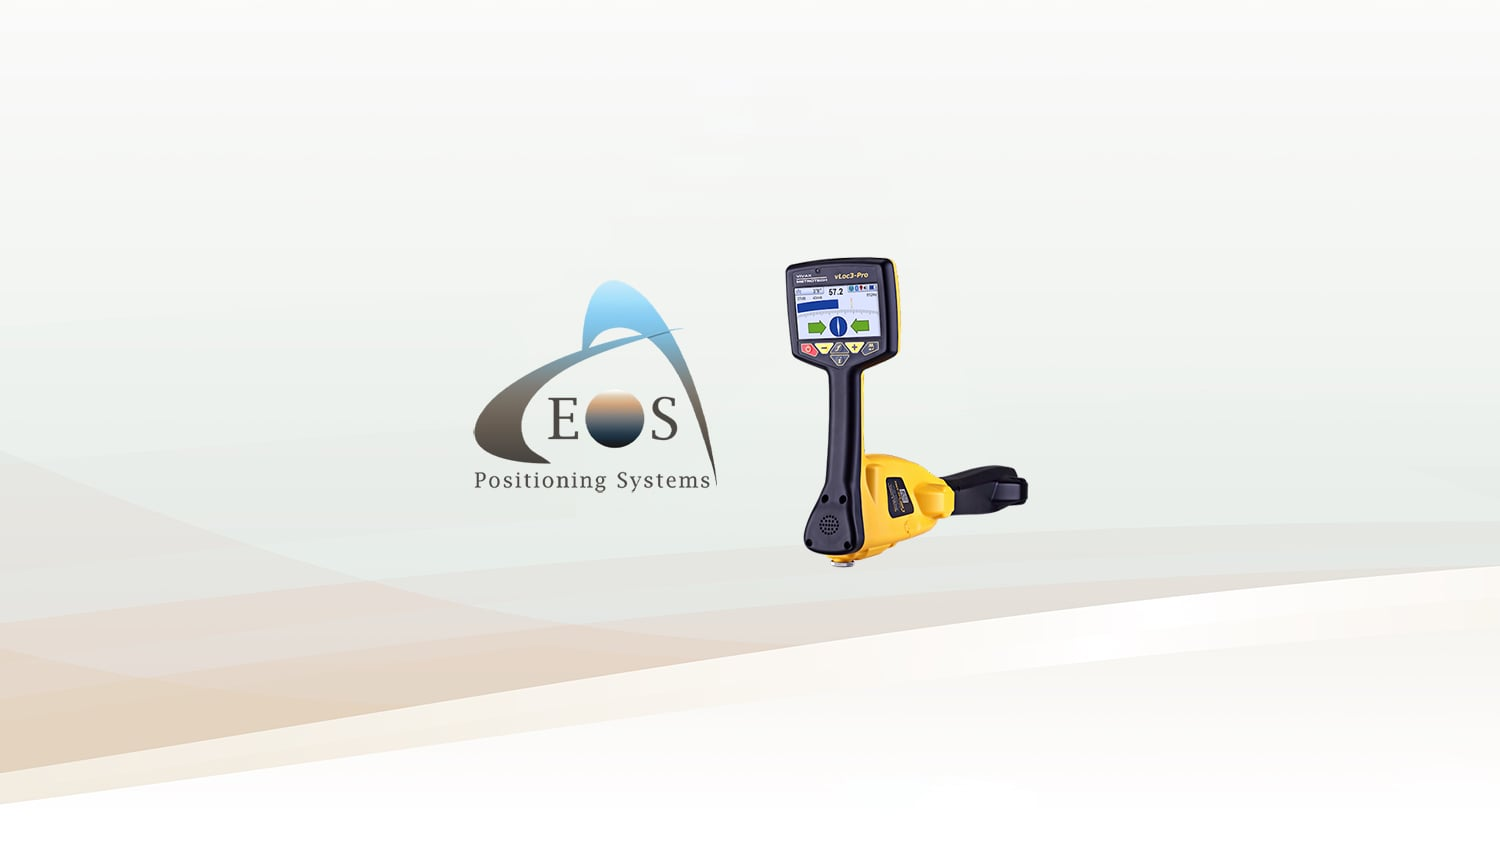 Eos Locate™ for ArcGIS Quick Start Guide for vLoc3-Pro GPS GIS GNSS